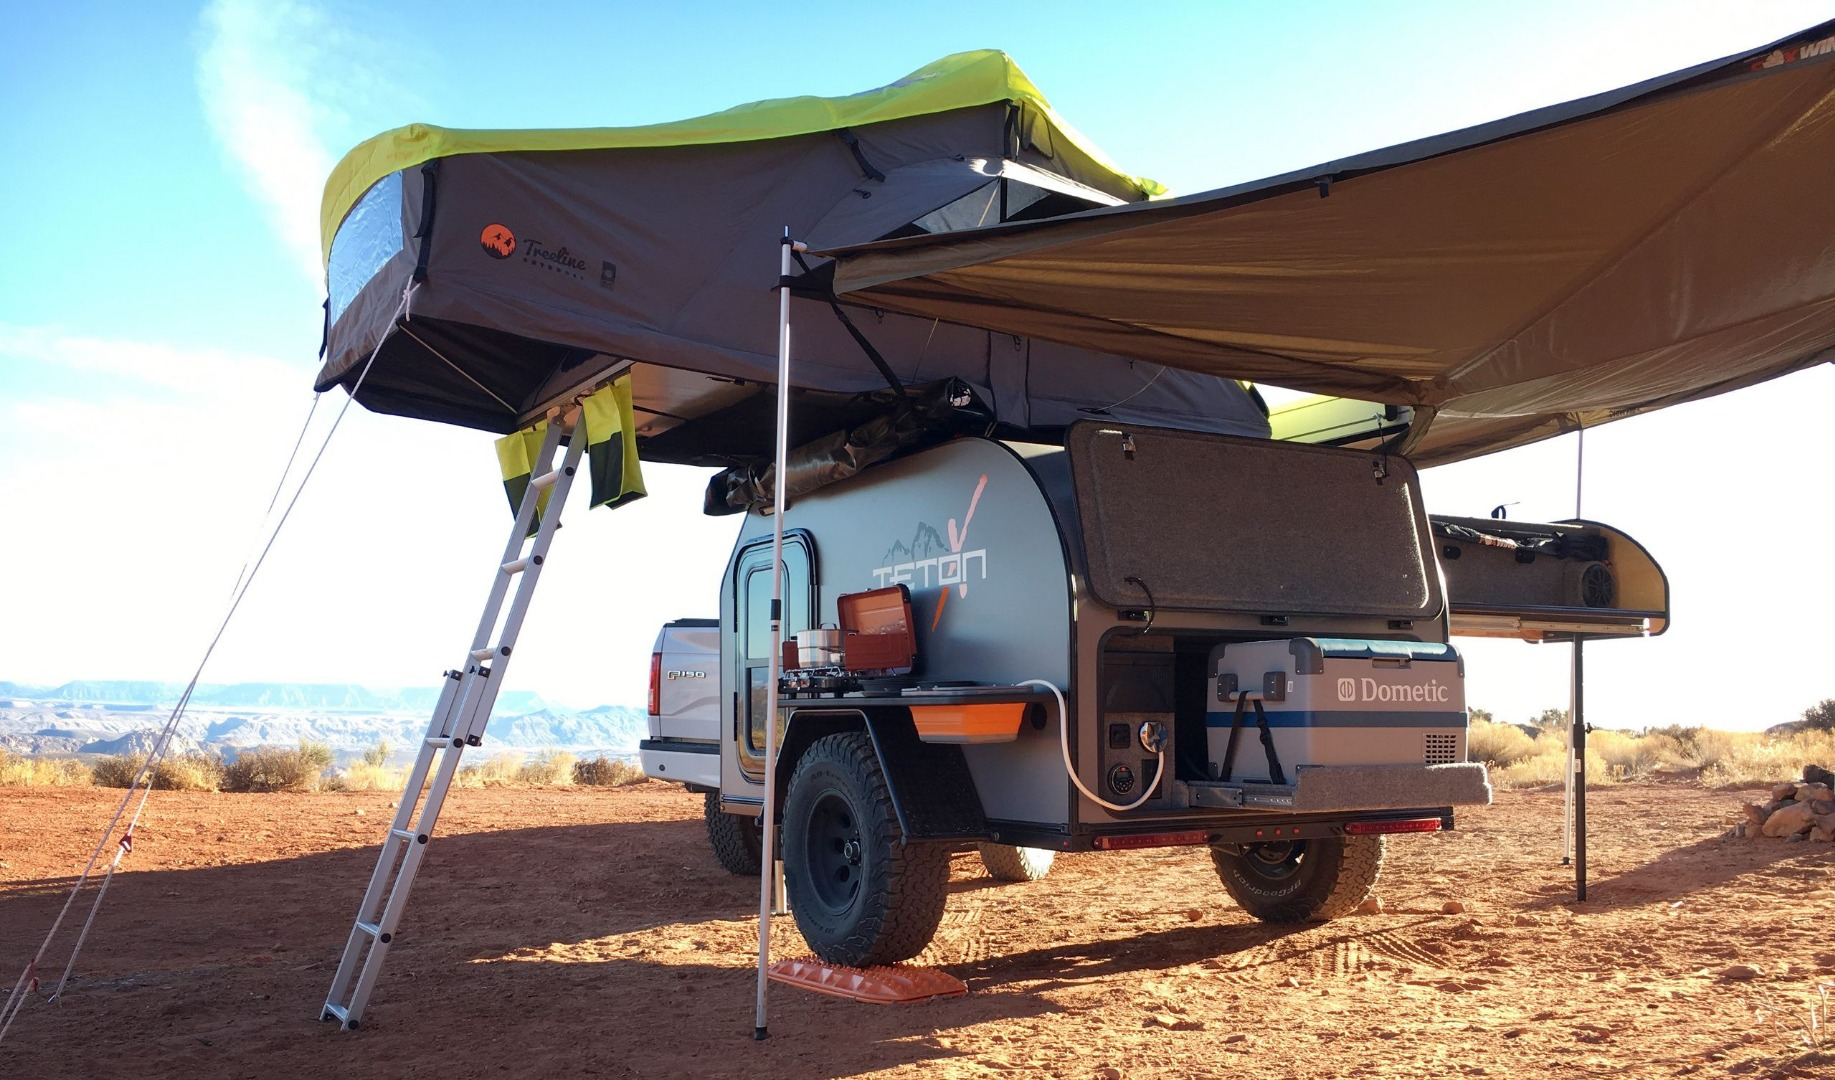 TetonX off-road trailers slide out modern conveniences at camp